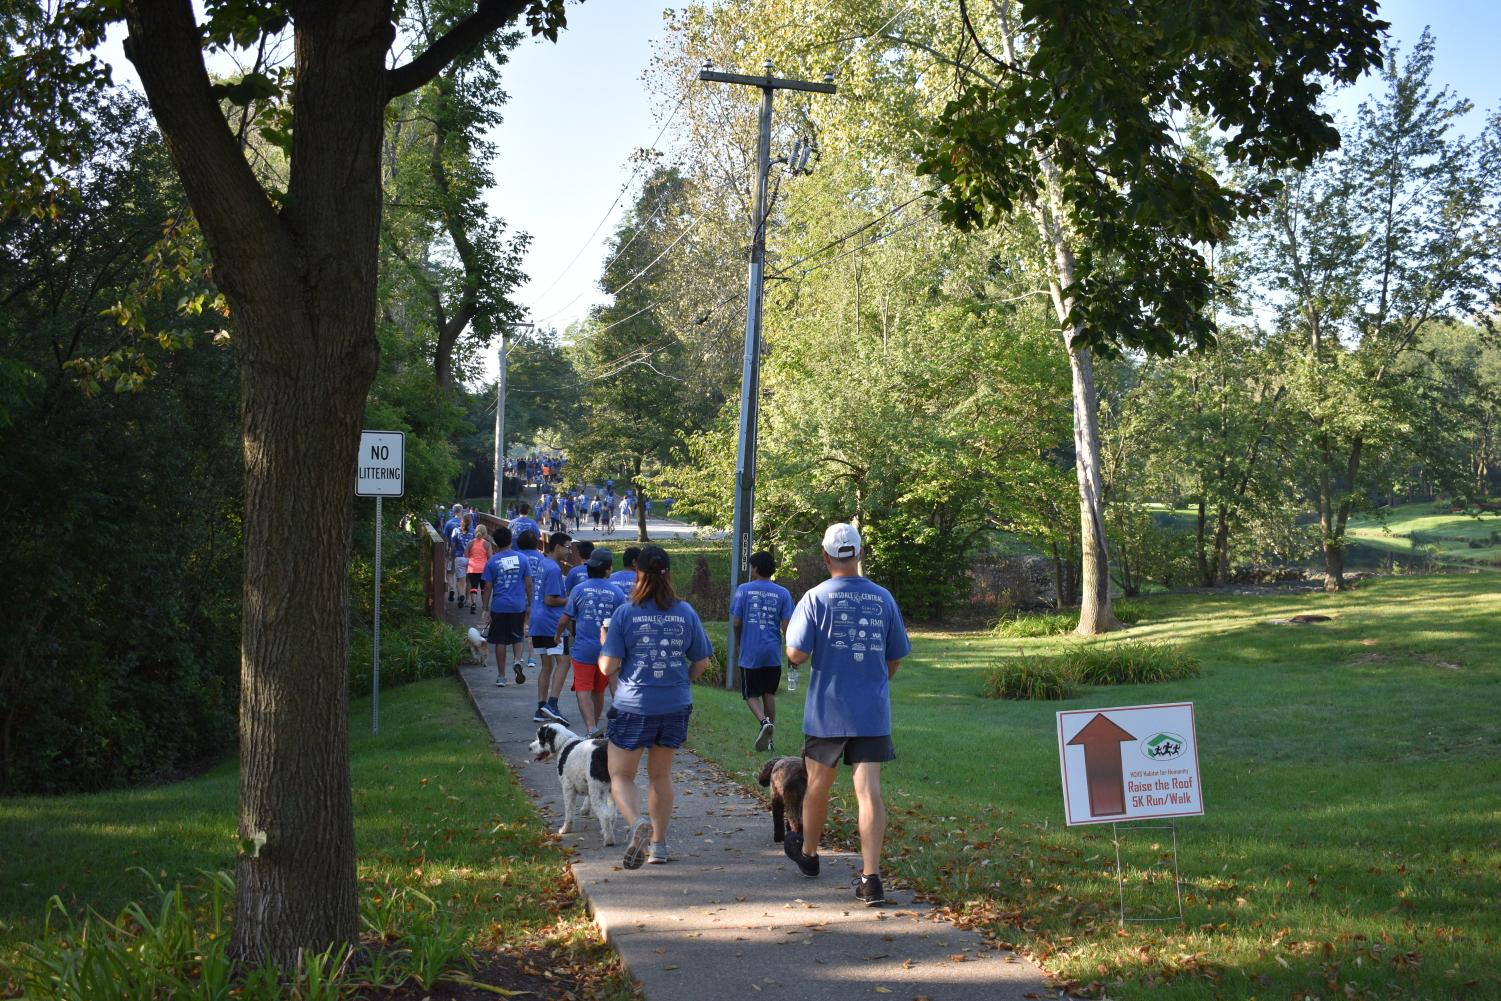 The Habitat for Humanity 5K walk/run took place on Sunday Sept. 16; participants walked or ran through the surrounding neighborhoods near the school.